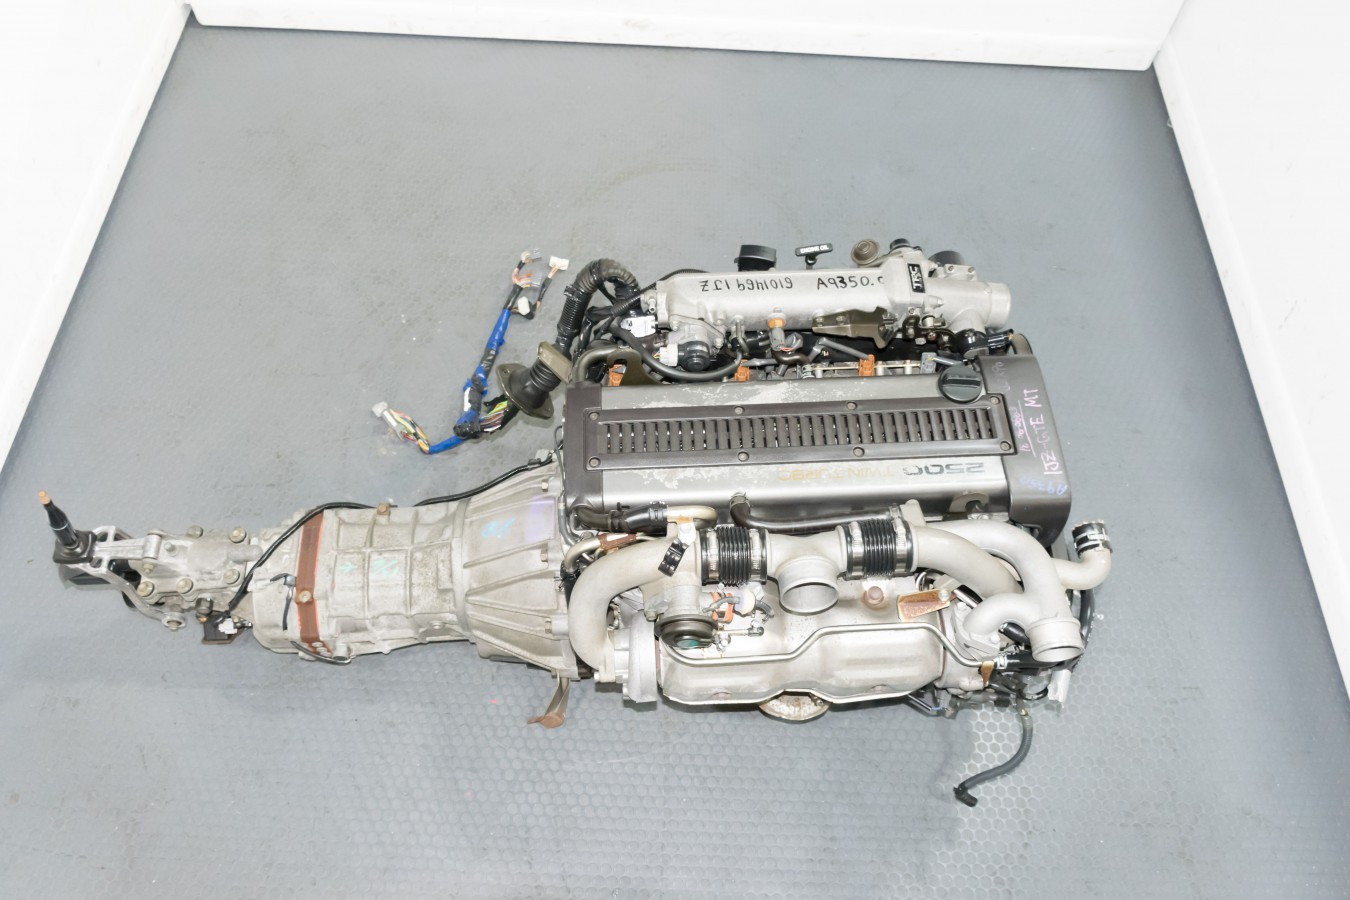 Used 1JZGTE Non VVTi Toyota Soarer Engine with Front Sump Oil Pan and R154  Transmission